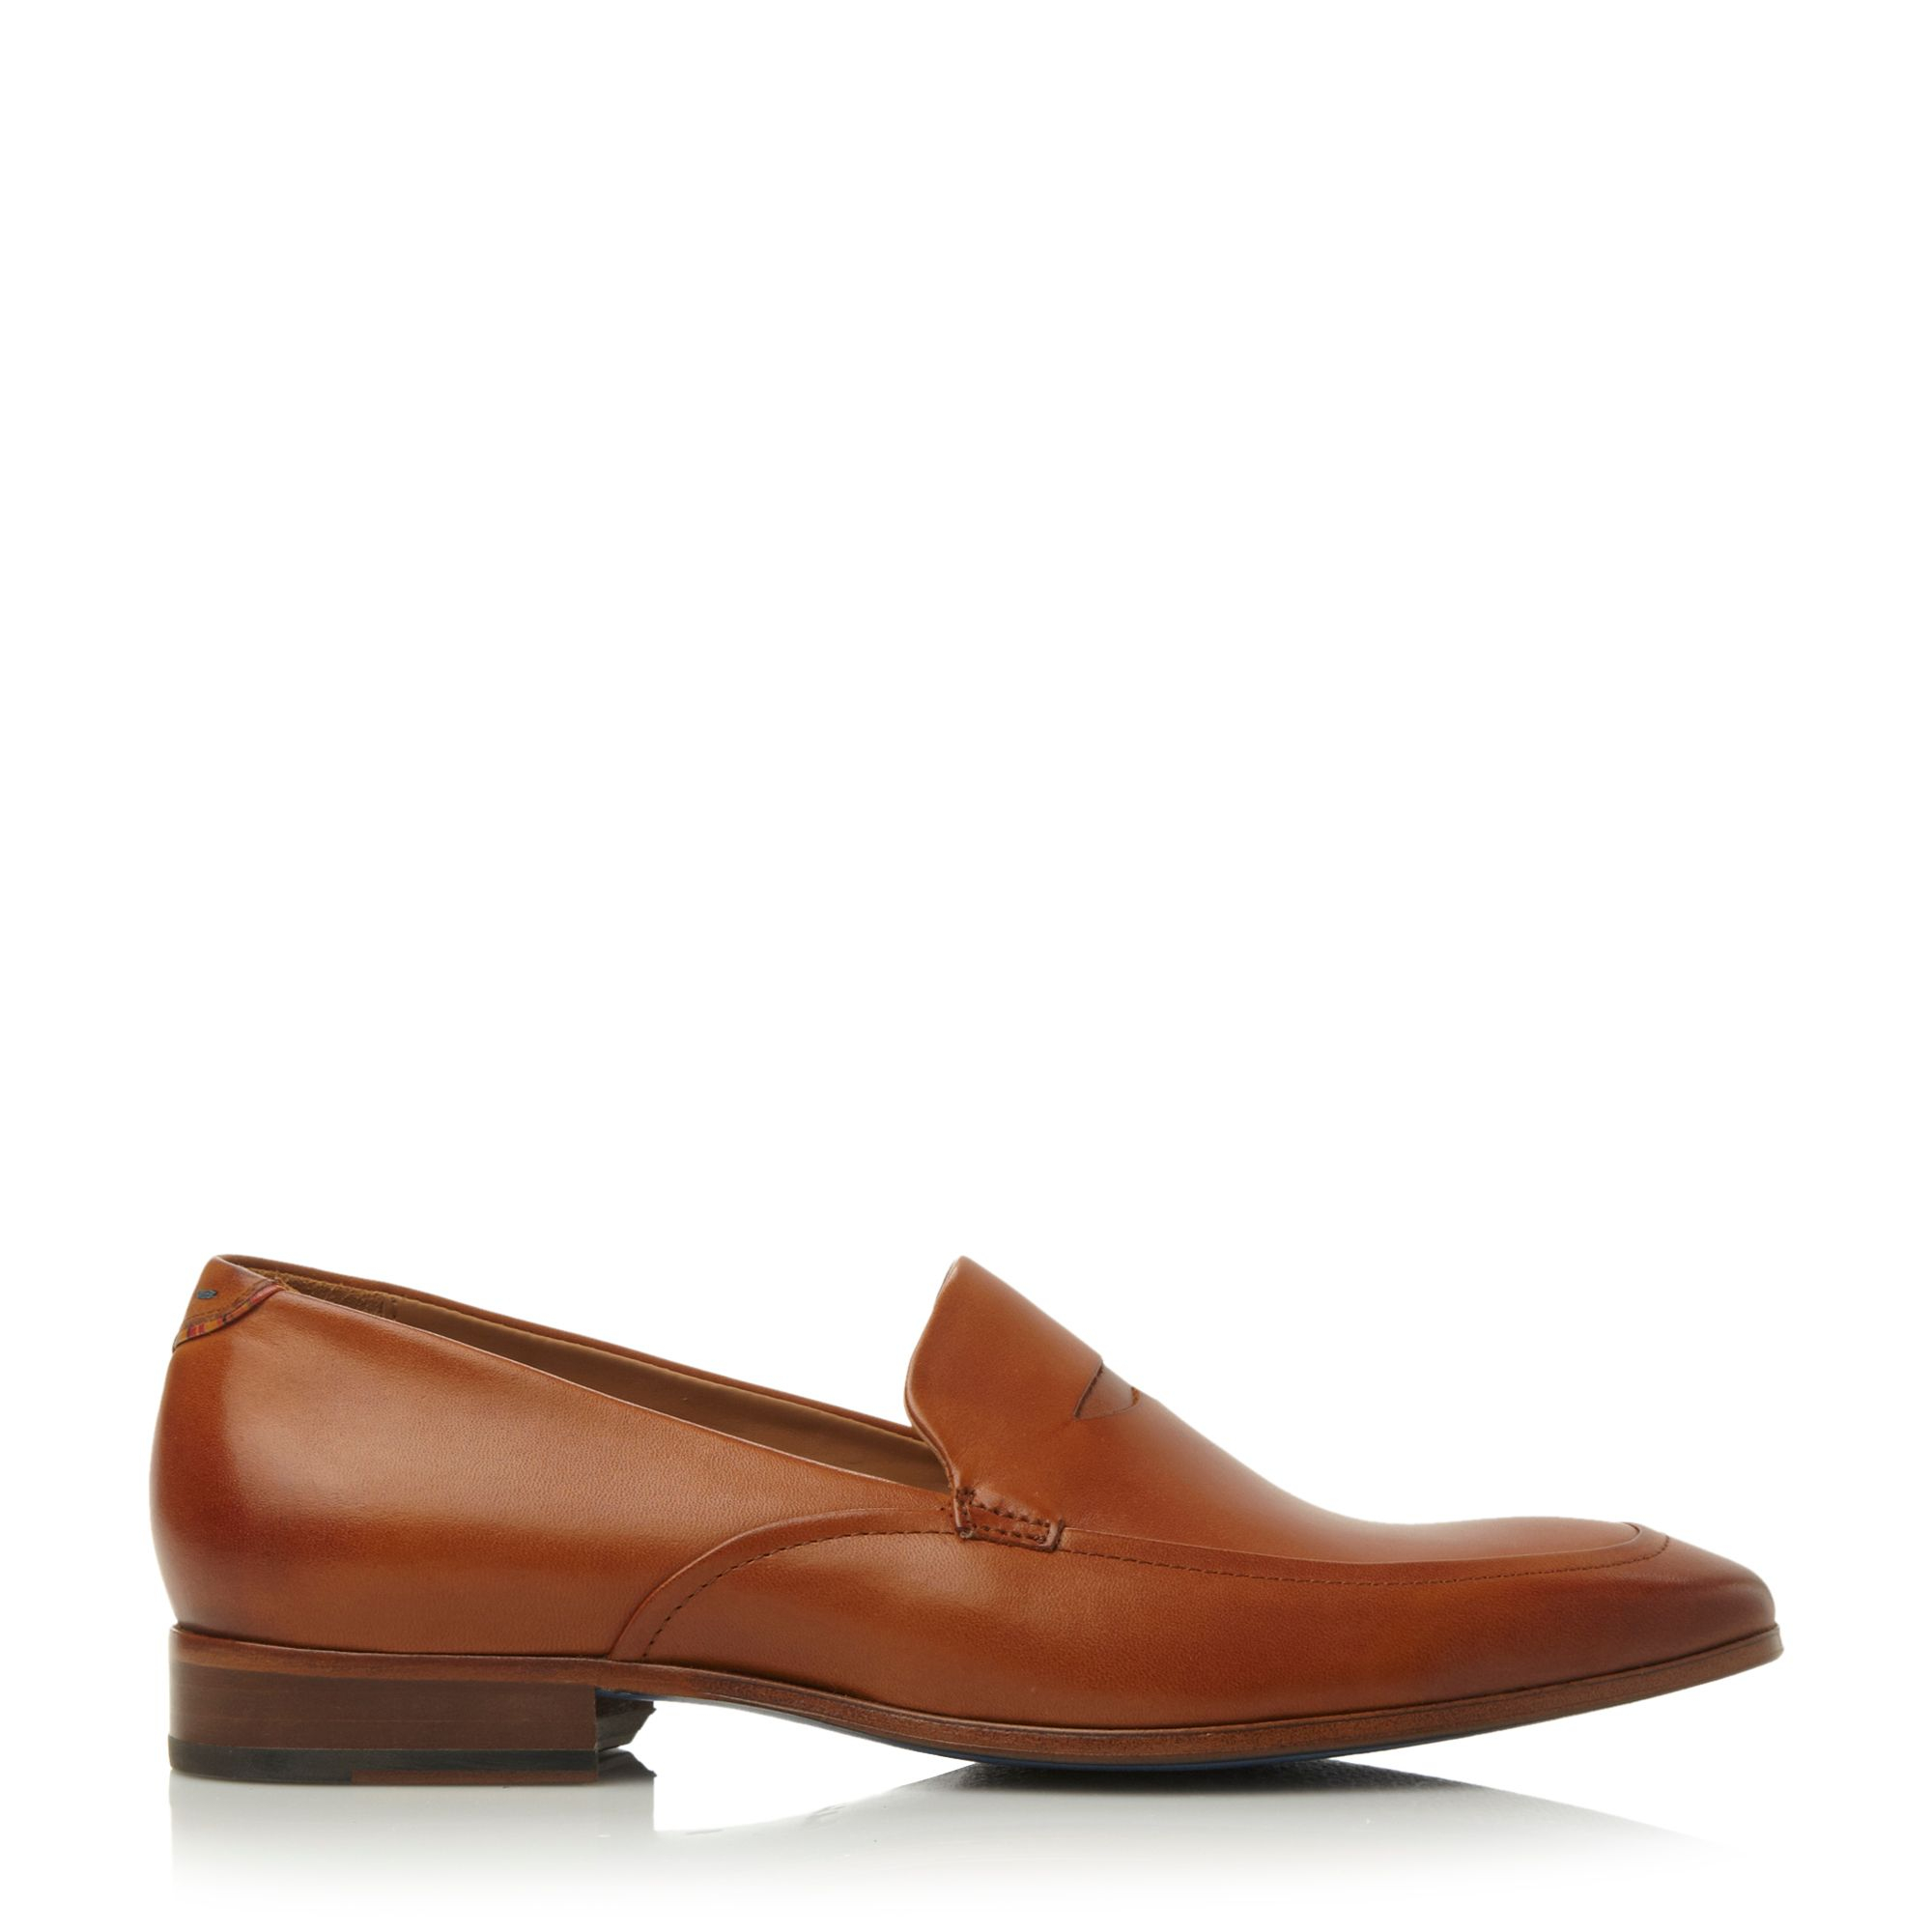 Paul smith formal shoes